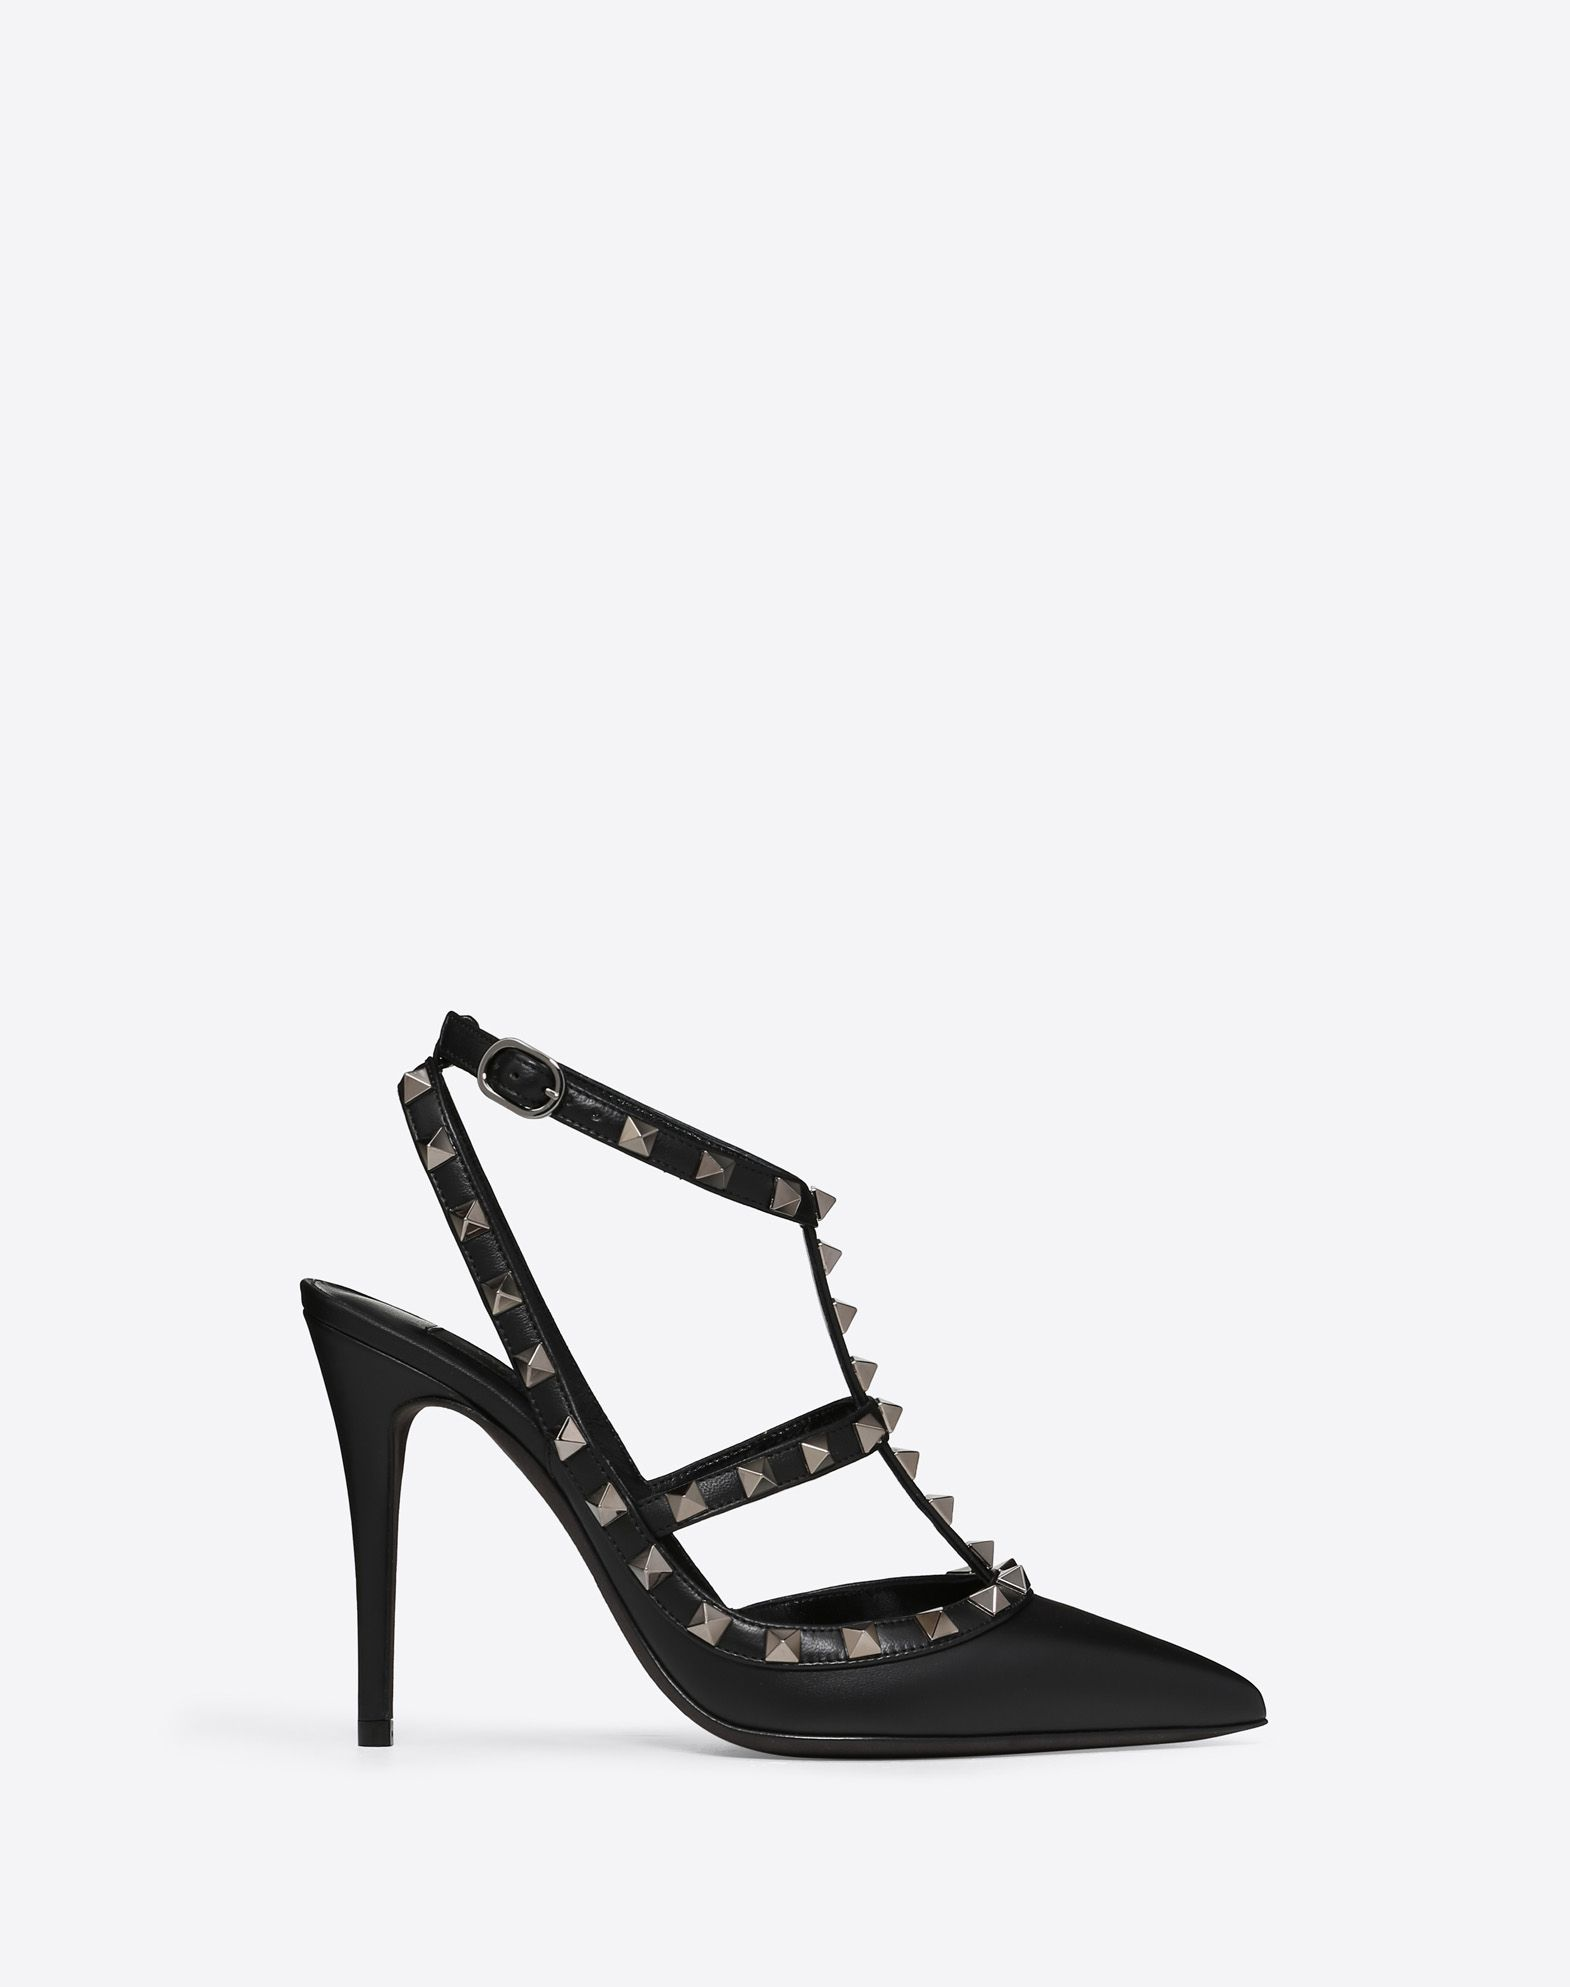 VALENTINO Contrasting applications Buckle Narrow toeline Leather sole  45351403vq